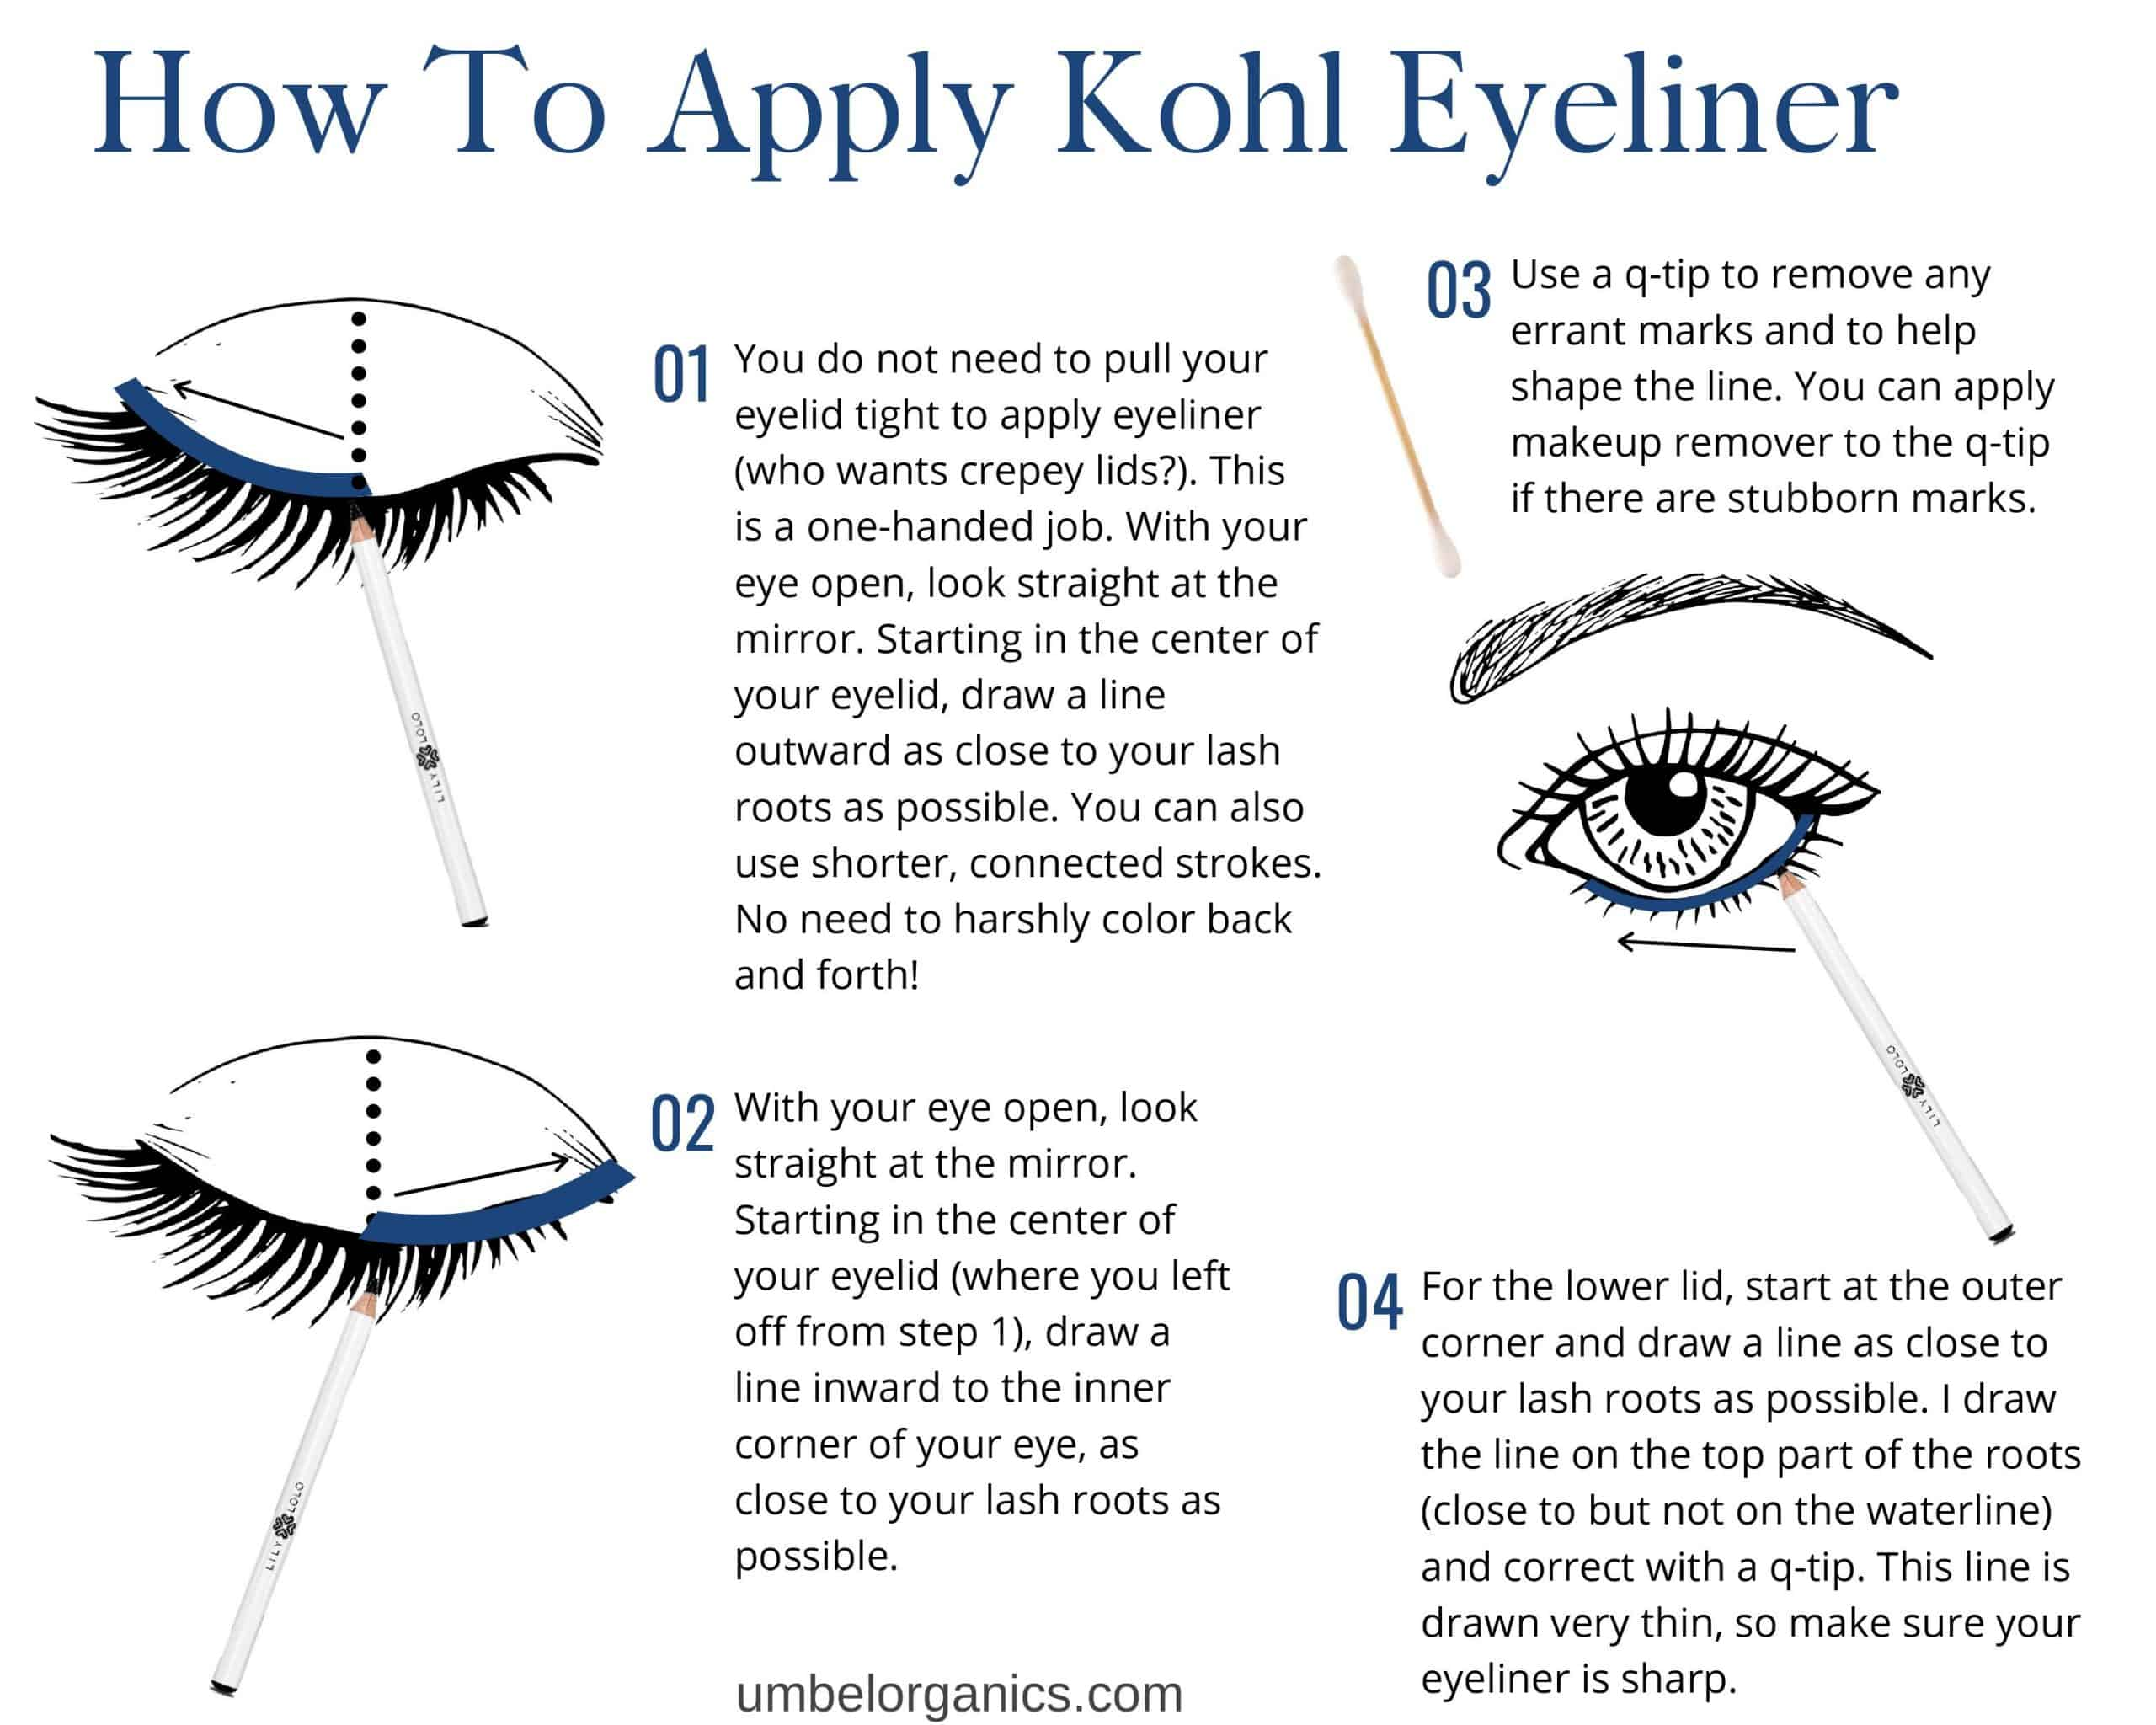 How To Apply Kohl Eyeliner